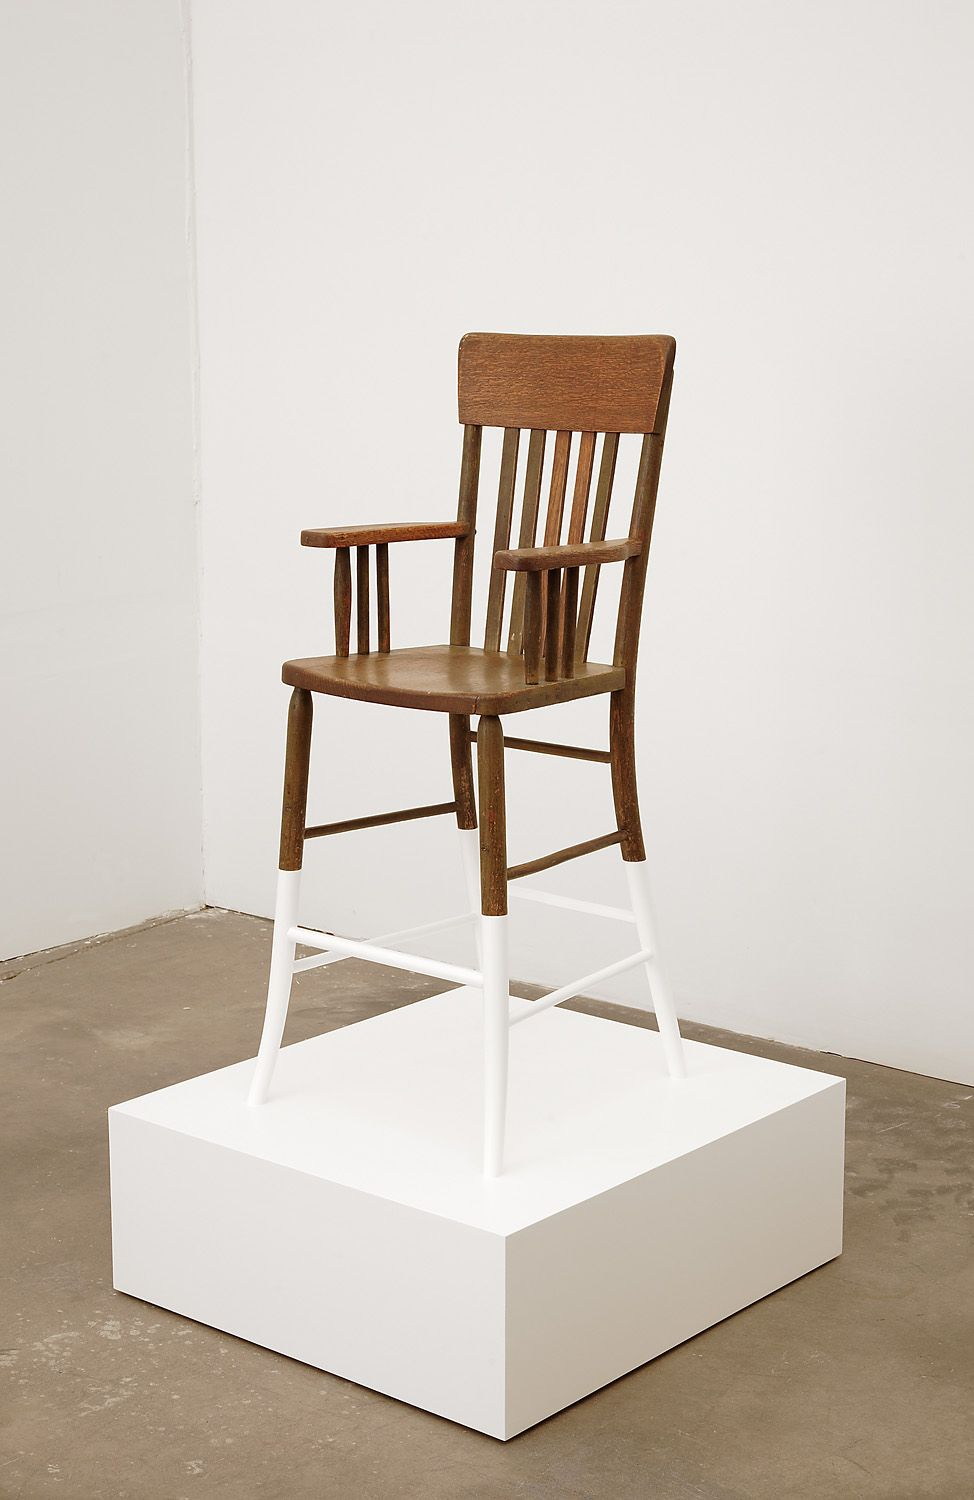 Untitled, 2008, Enamel paint on plywood, found chair